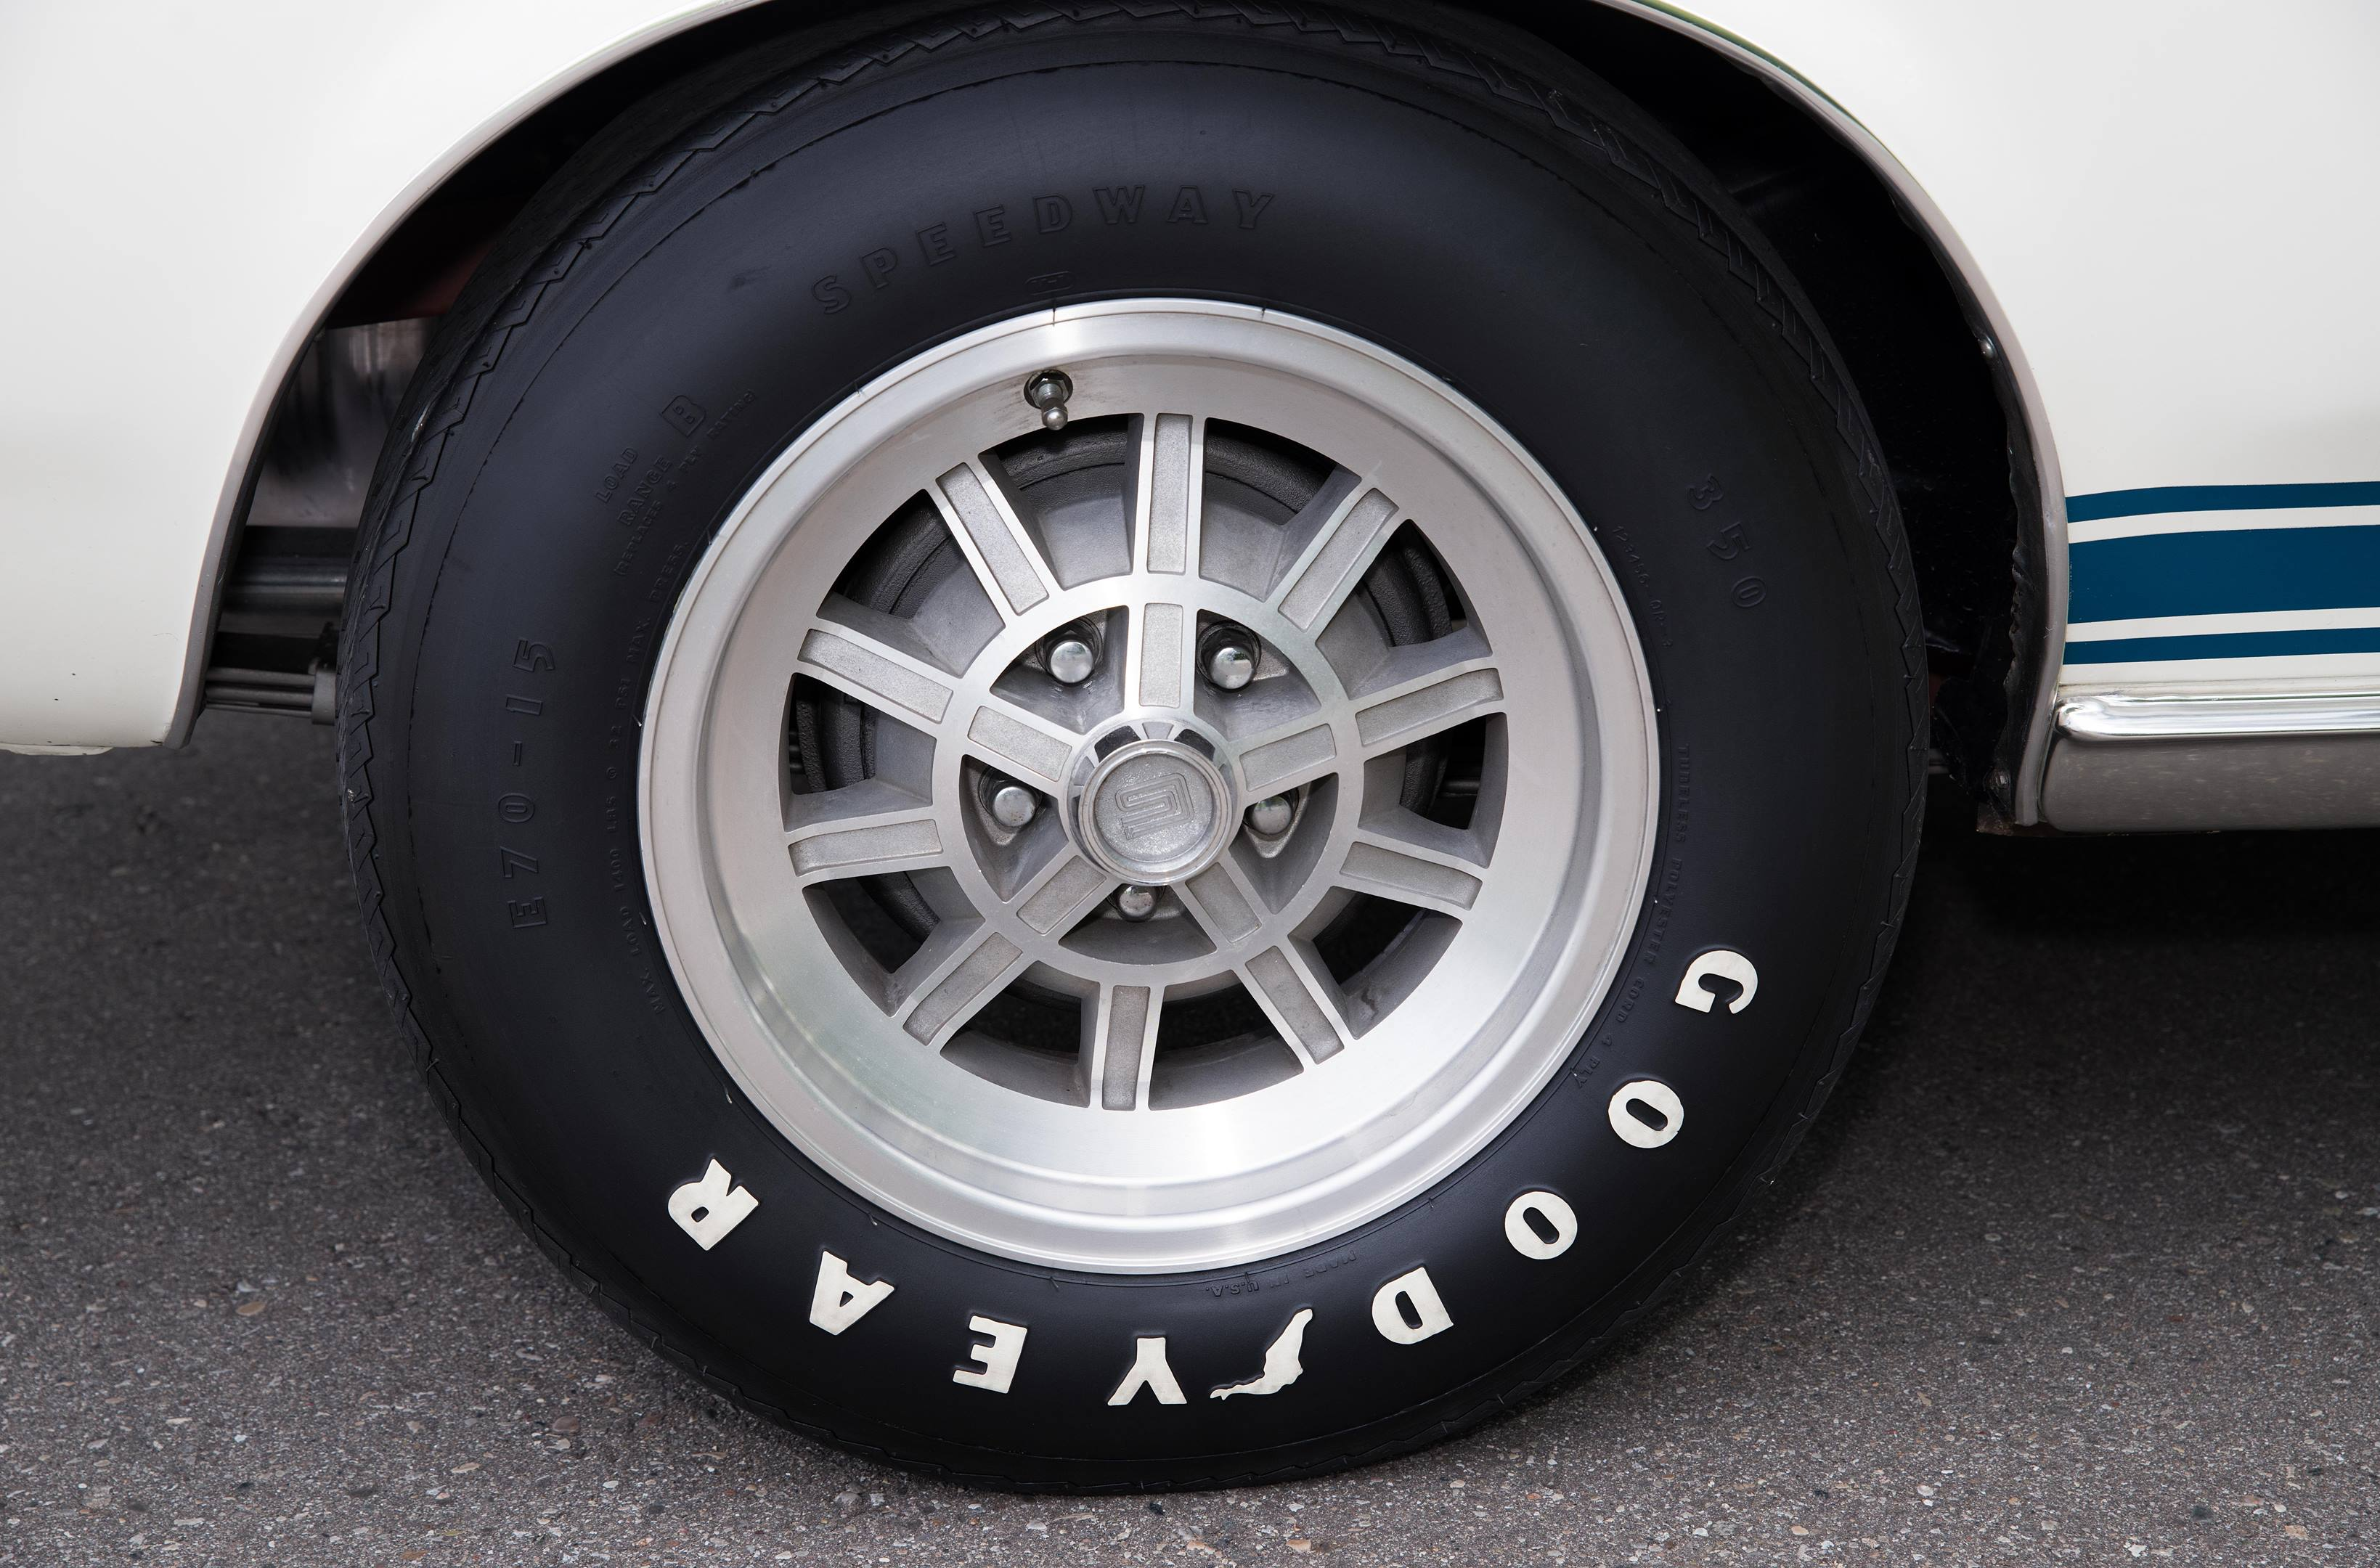 The original wheels and Coker reproduction tires are model correct.